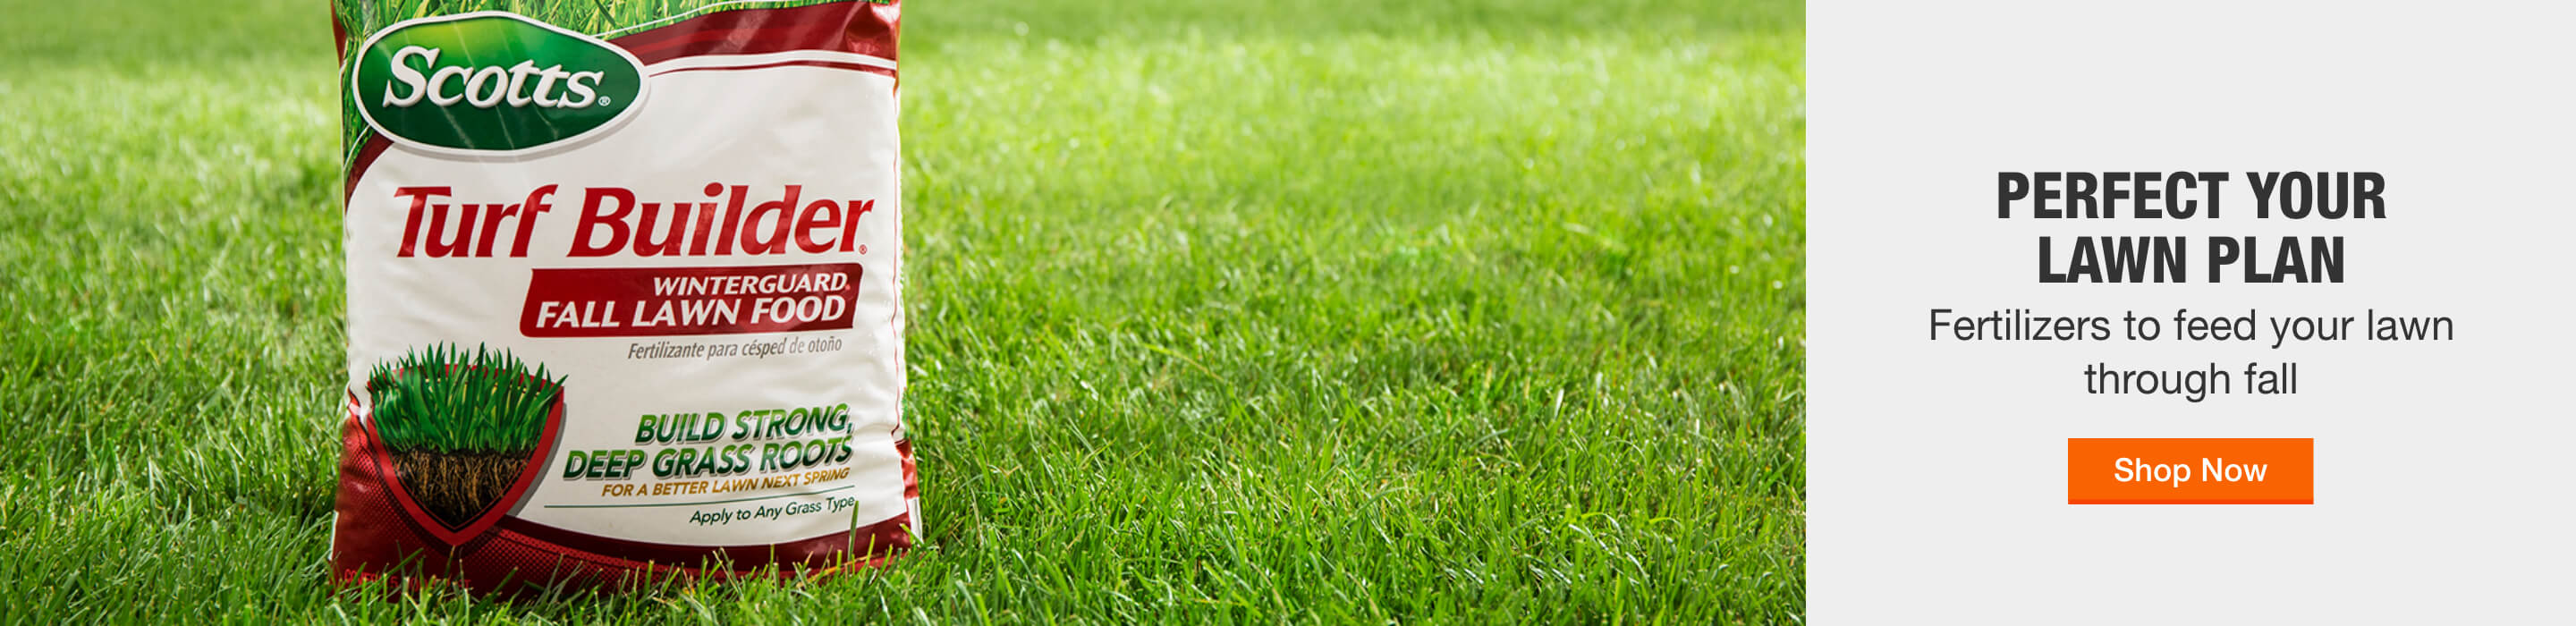 PERFECT YOUR LAWN PLAN - Fertilizers to feed your lawn through fall. Shop Now